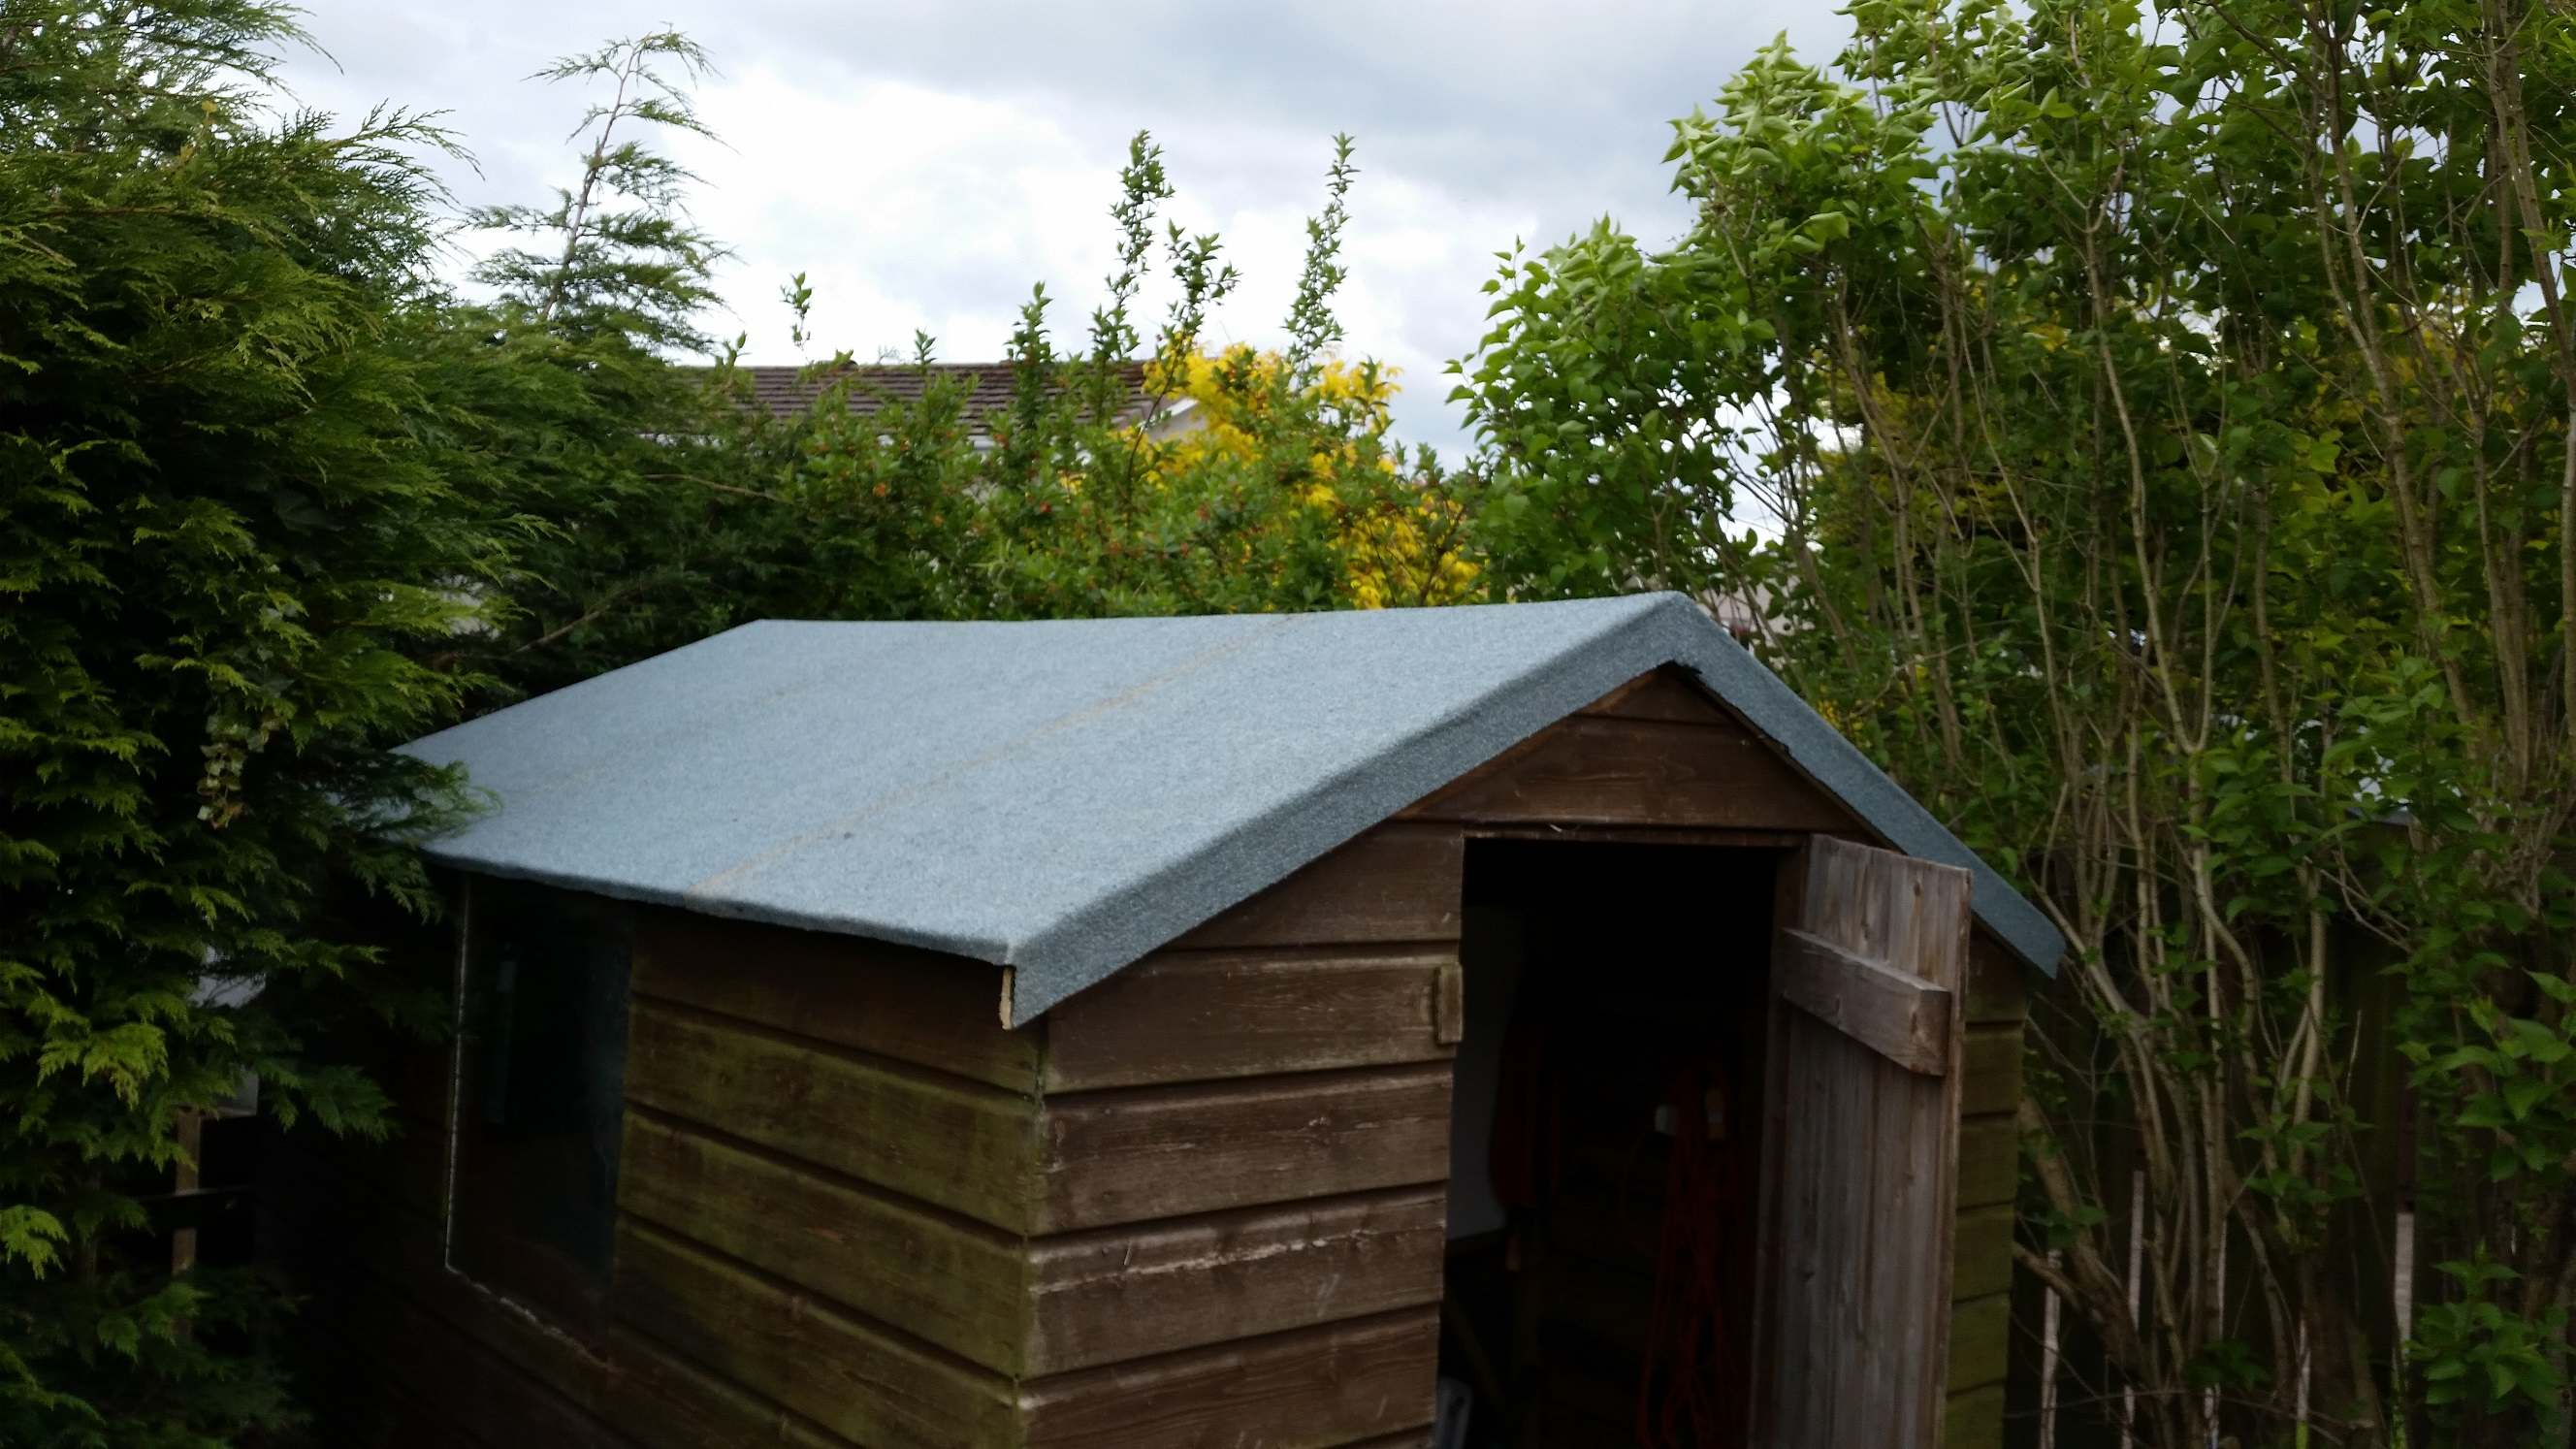 New Heat Bonded Felt For Leaking Shed Roof Ruddy Services